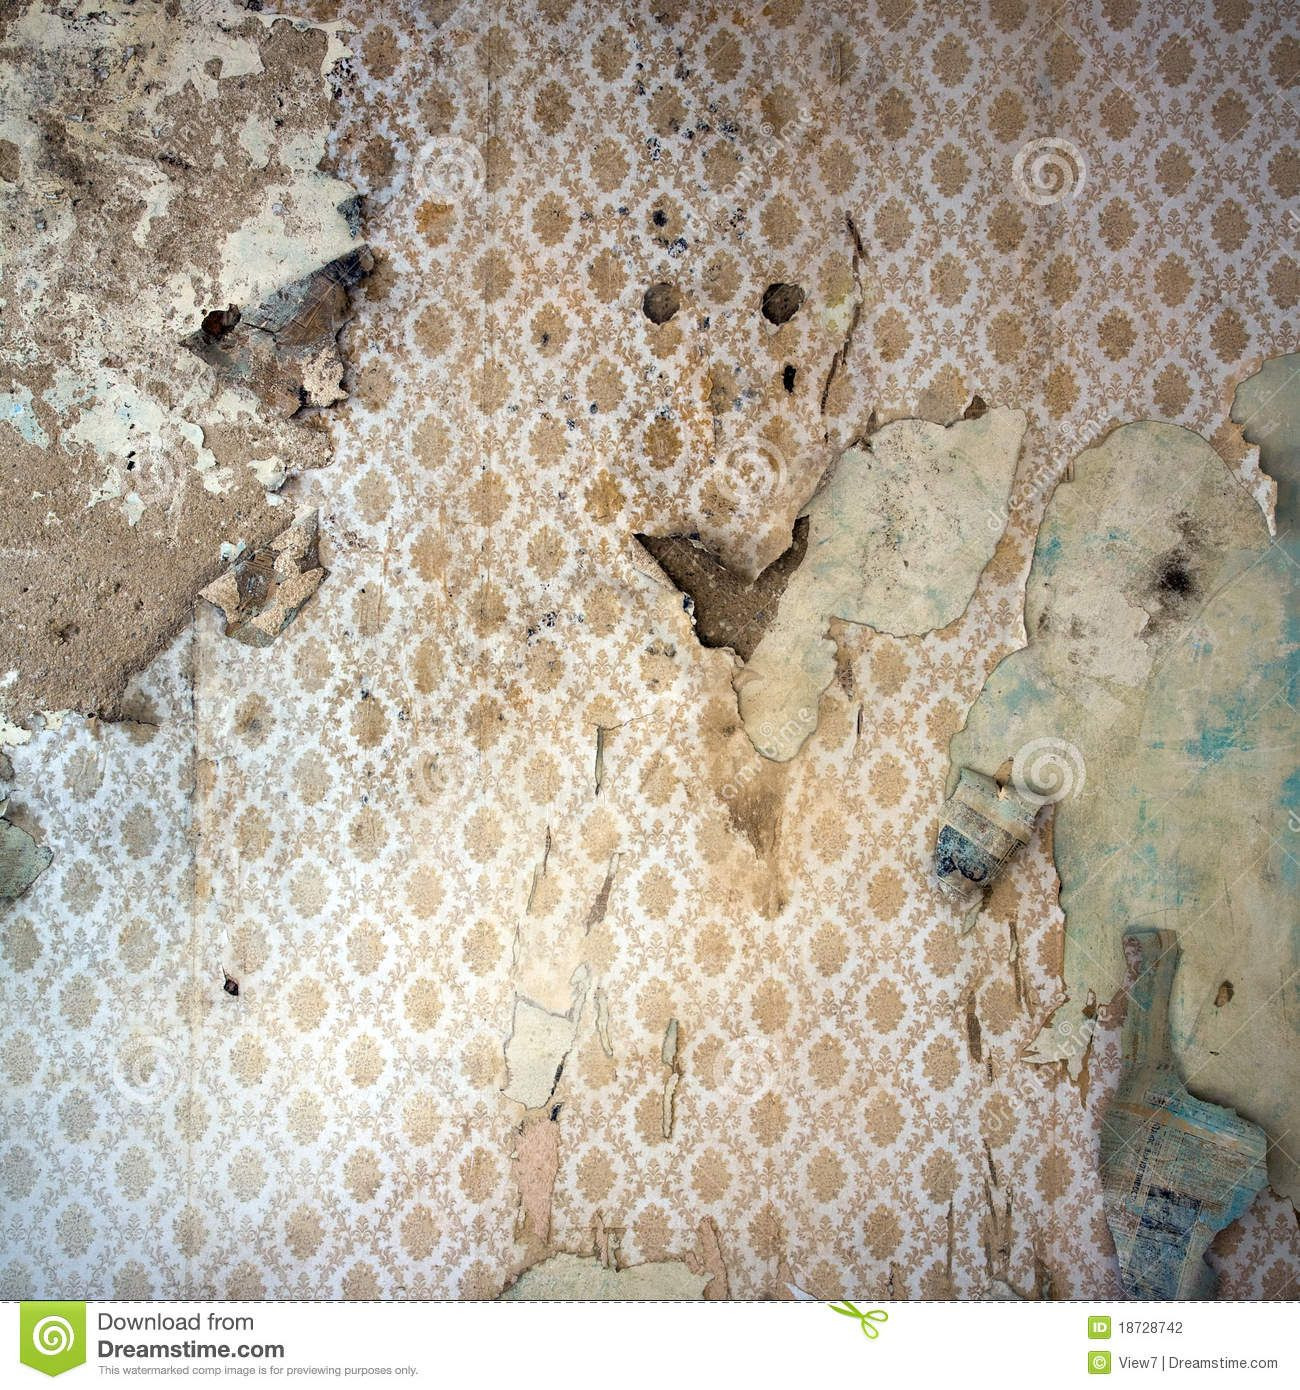 Peeling Wallpaper Damaged Wal Download From Over 65 Million